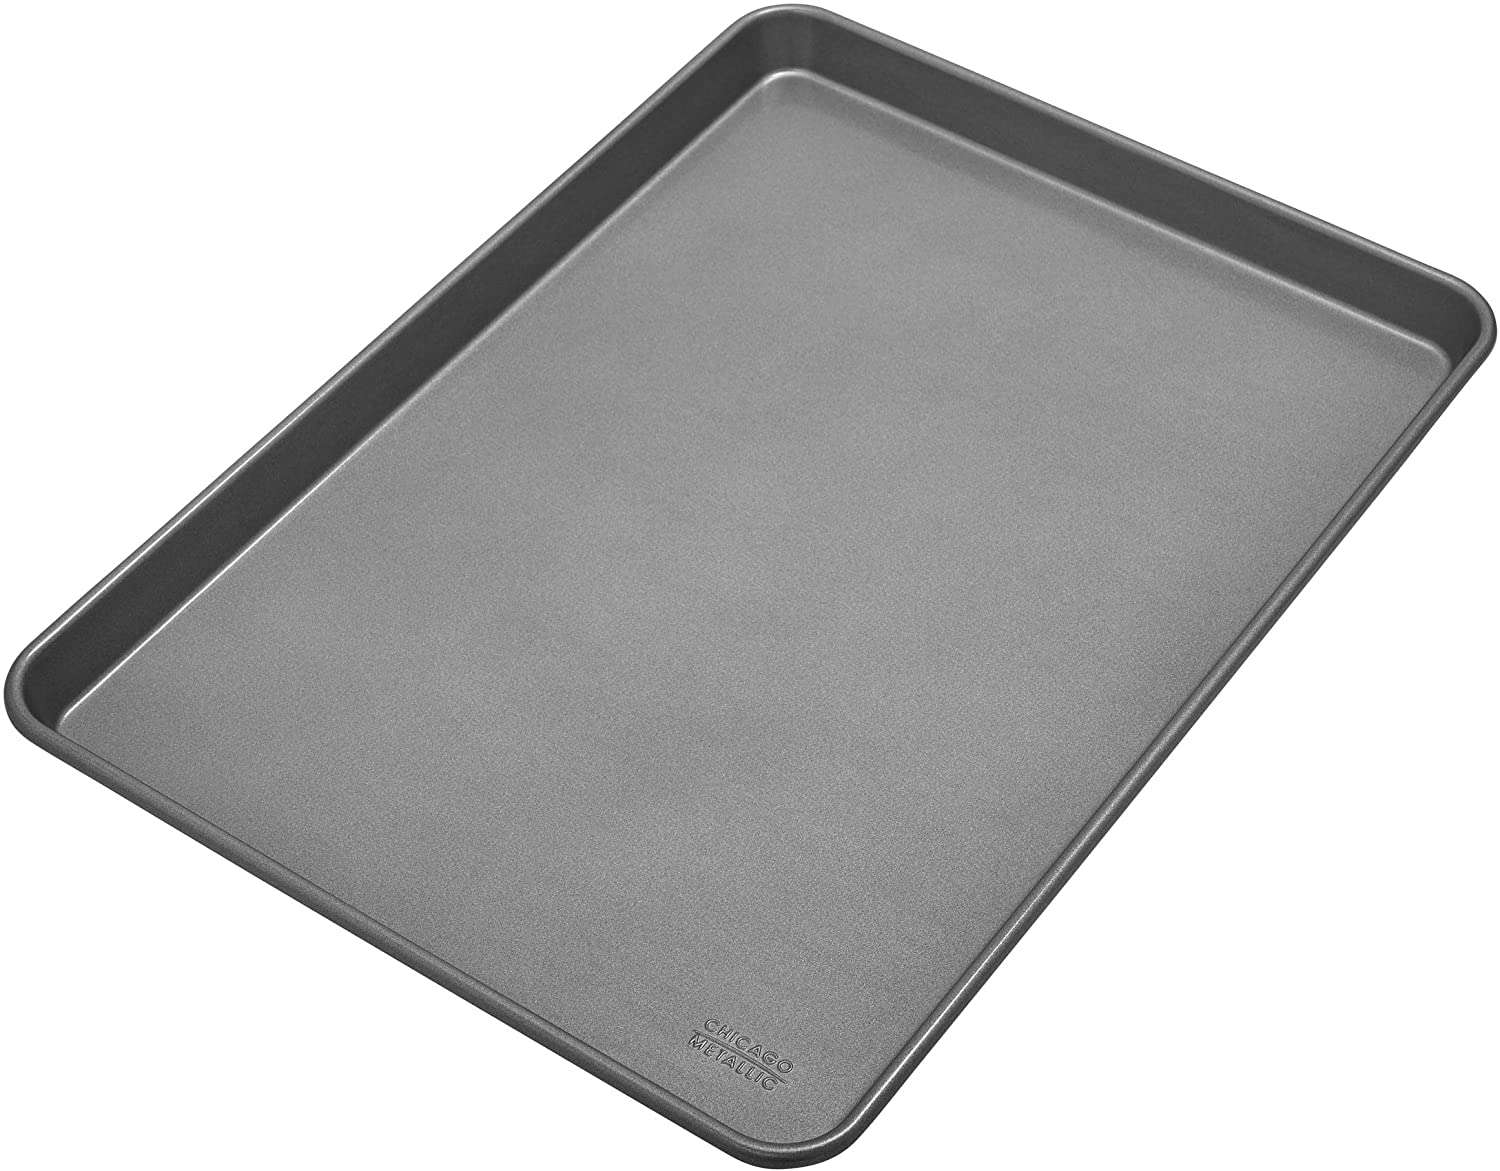 Chicago Metallic Professional Commercial II Jelly Roll Pan